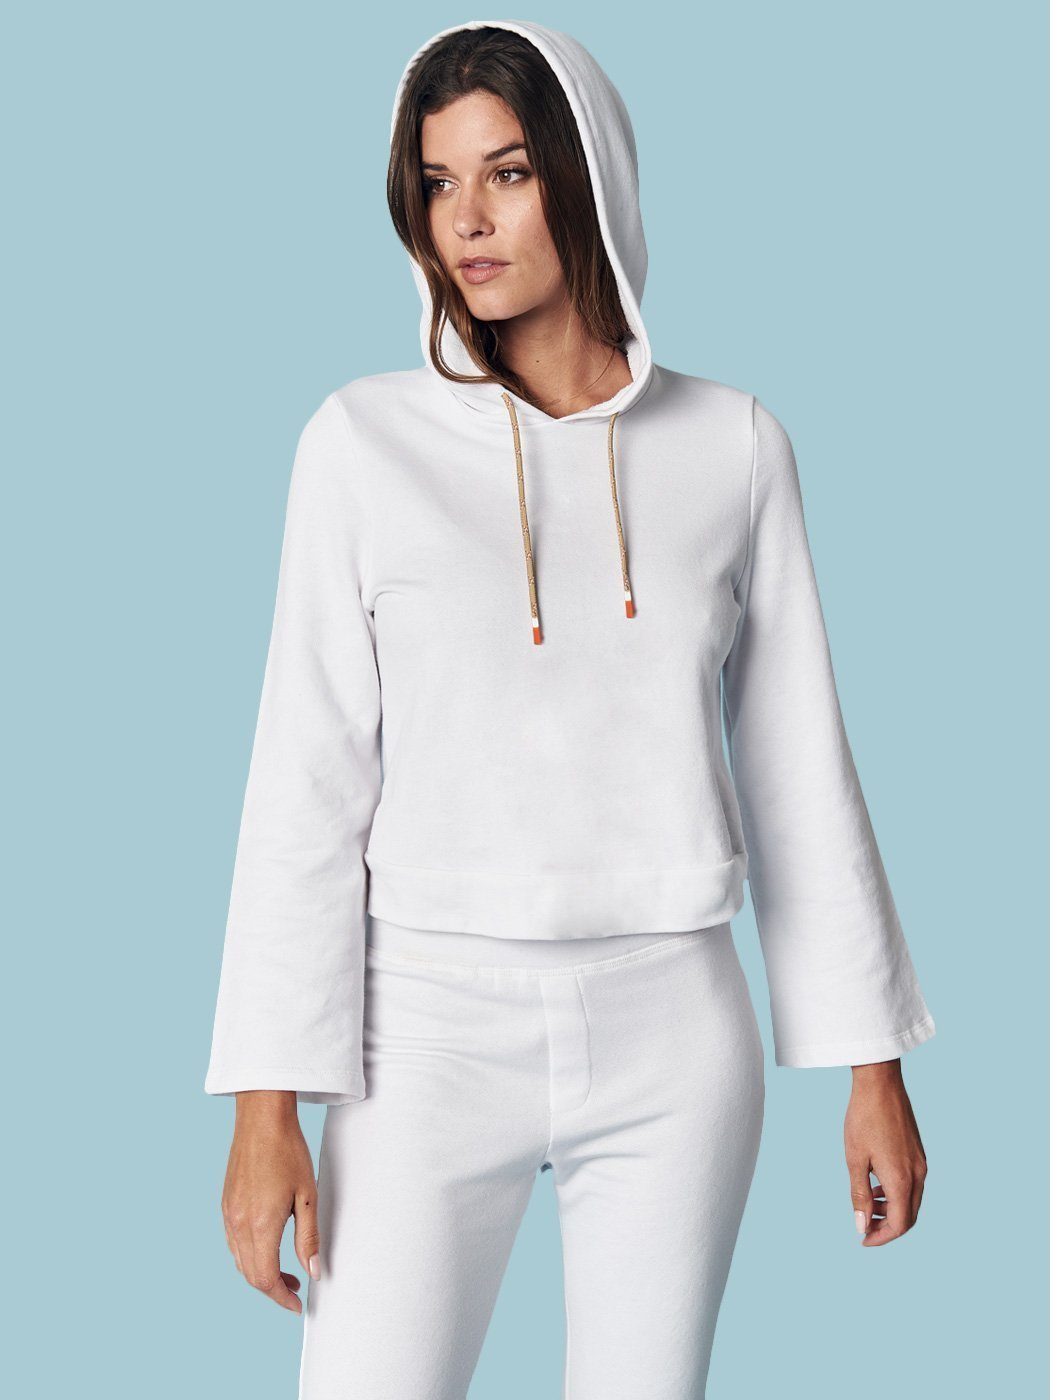 Off Duty Pullover Hoodie White, Final Sale